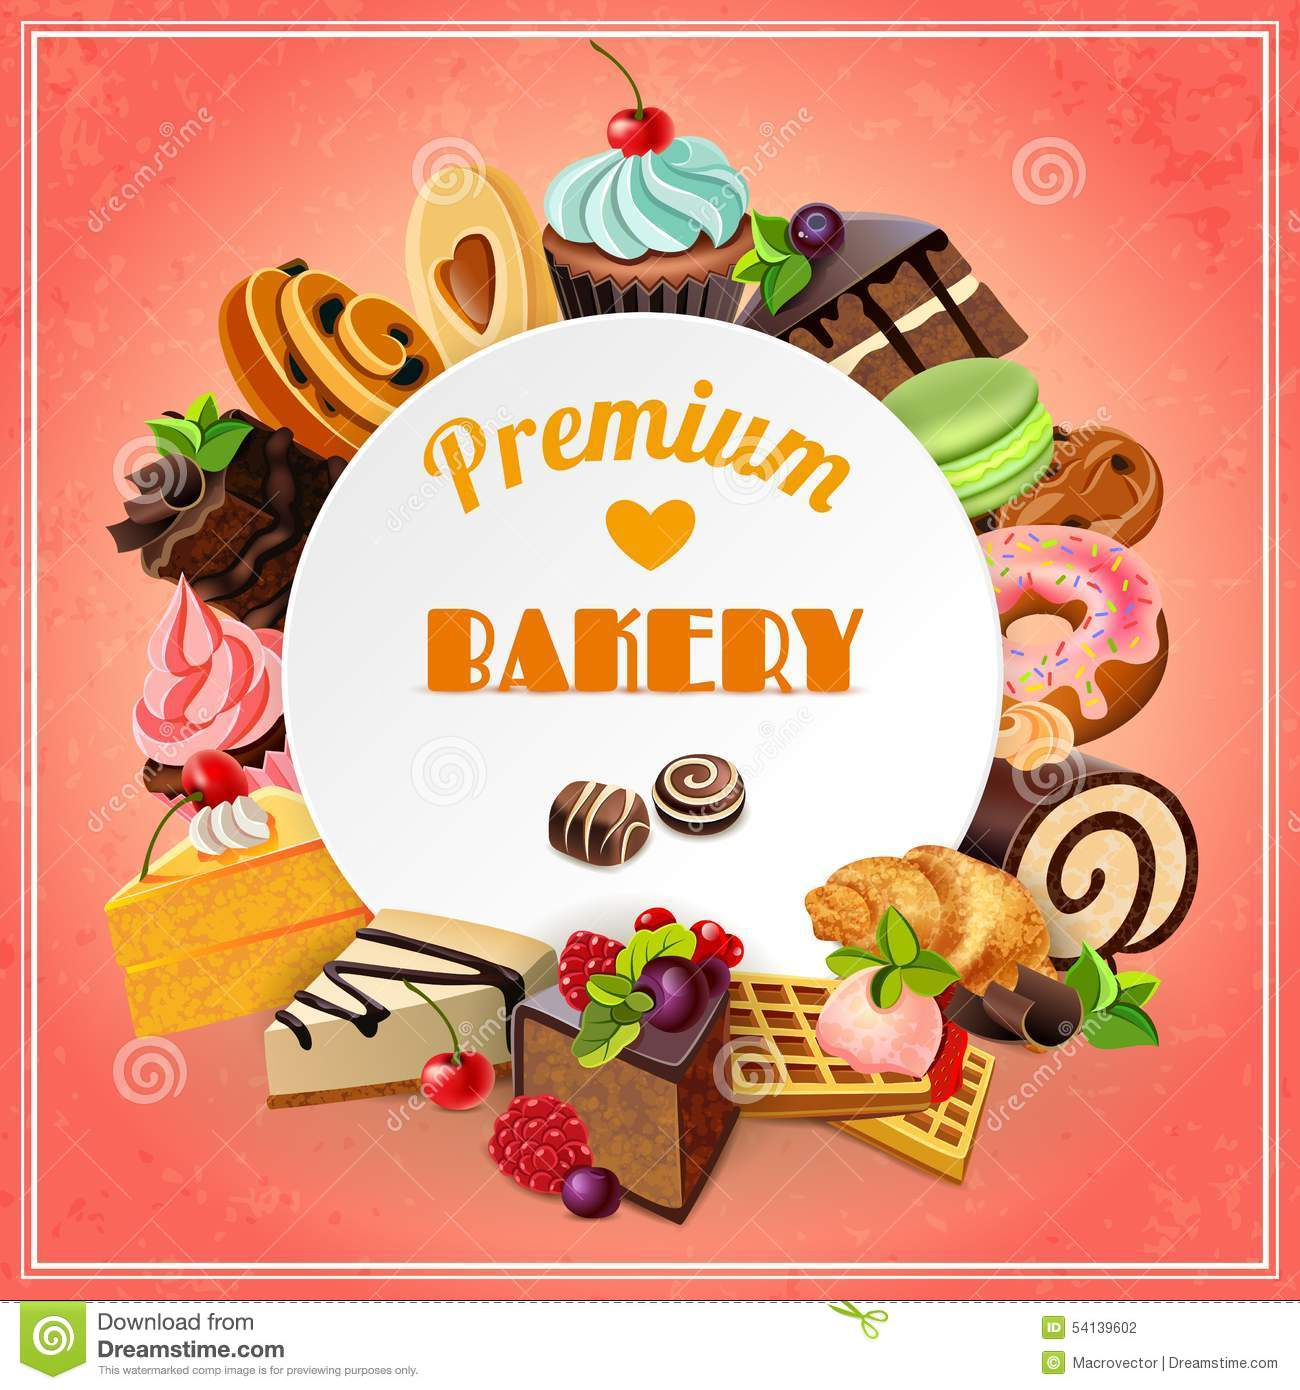 Bakery Promo Poster Stock Vector Illustration Of Cream